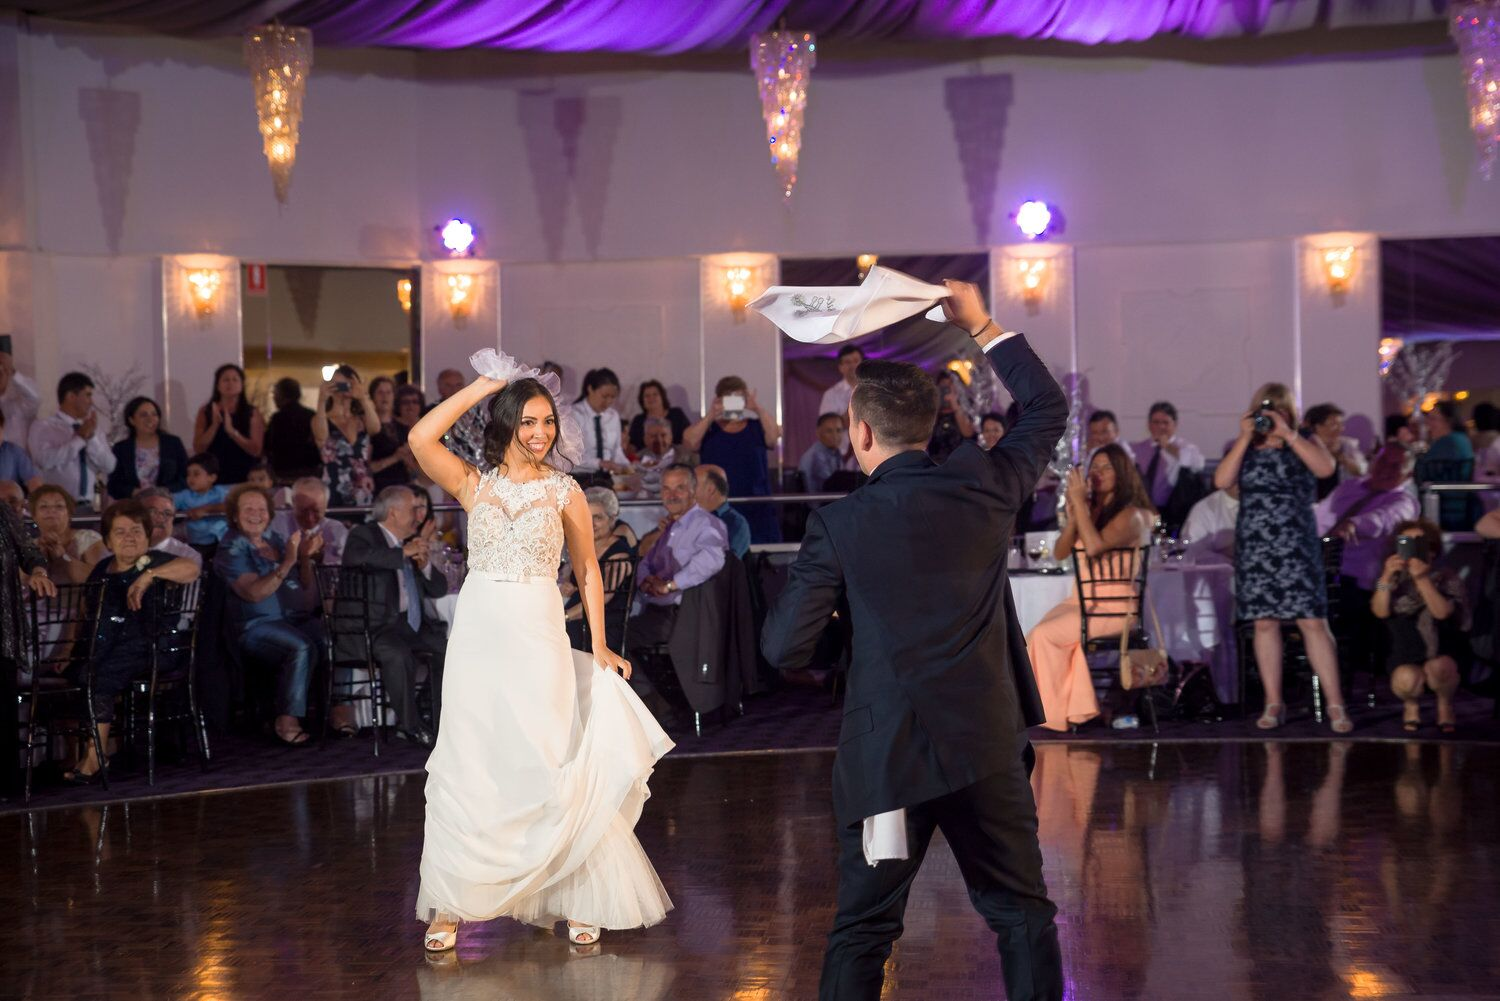 bride and groom dancing with guests looking on